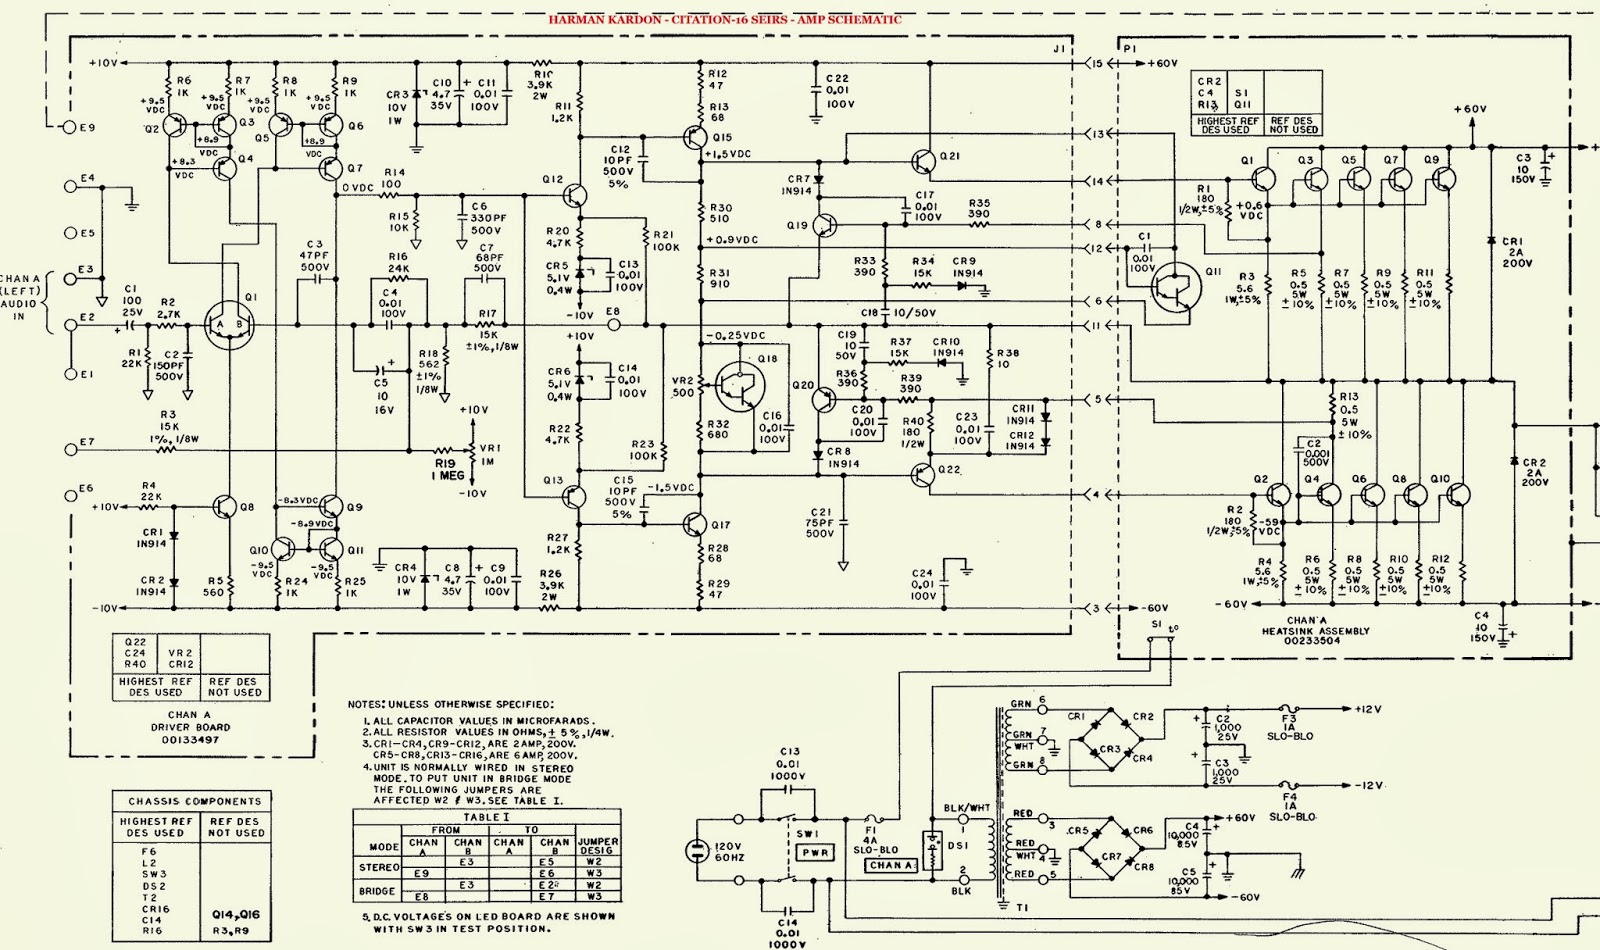 hight resolution of  audiovox wiring harman kardon amr6356 wiring diagram on apc wiring diagrams yamaha wiring diagrams audiovox wiring e46